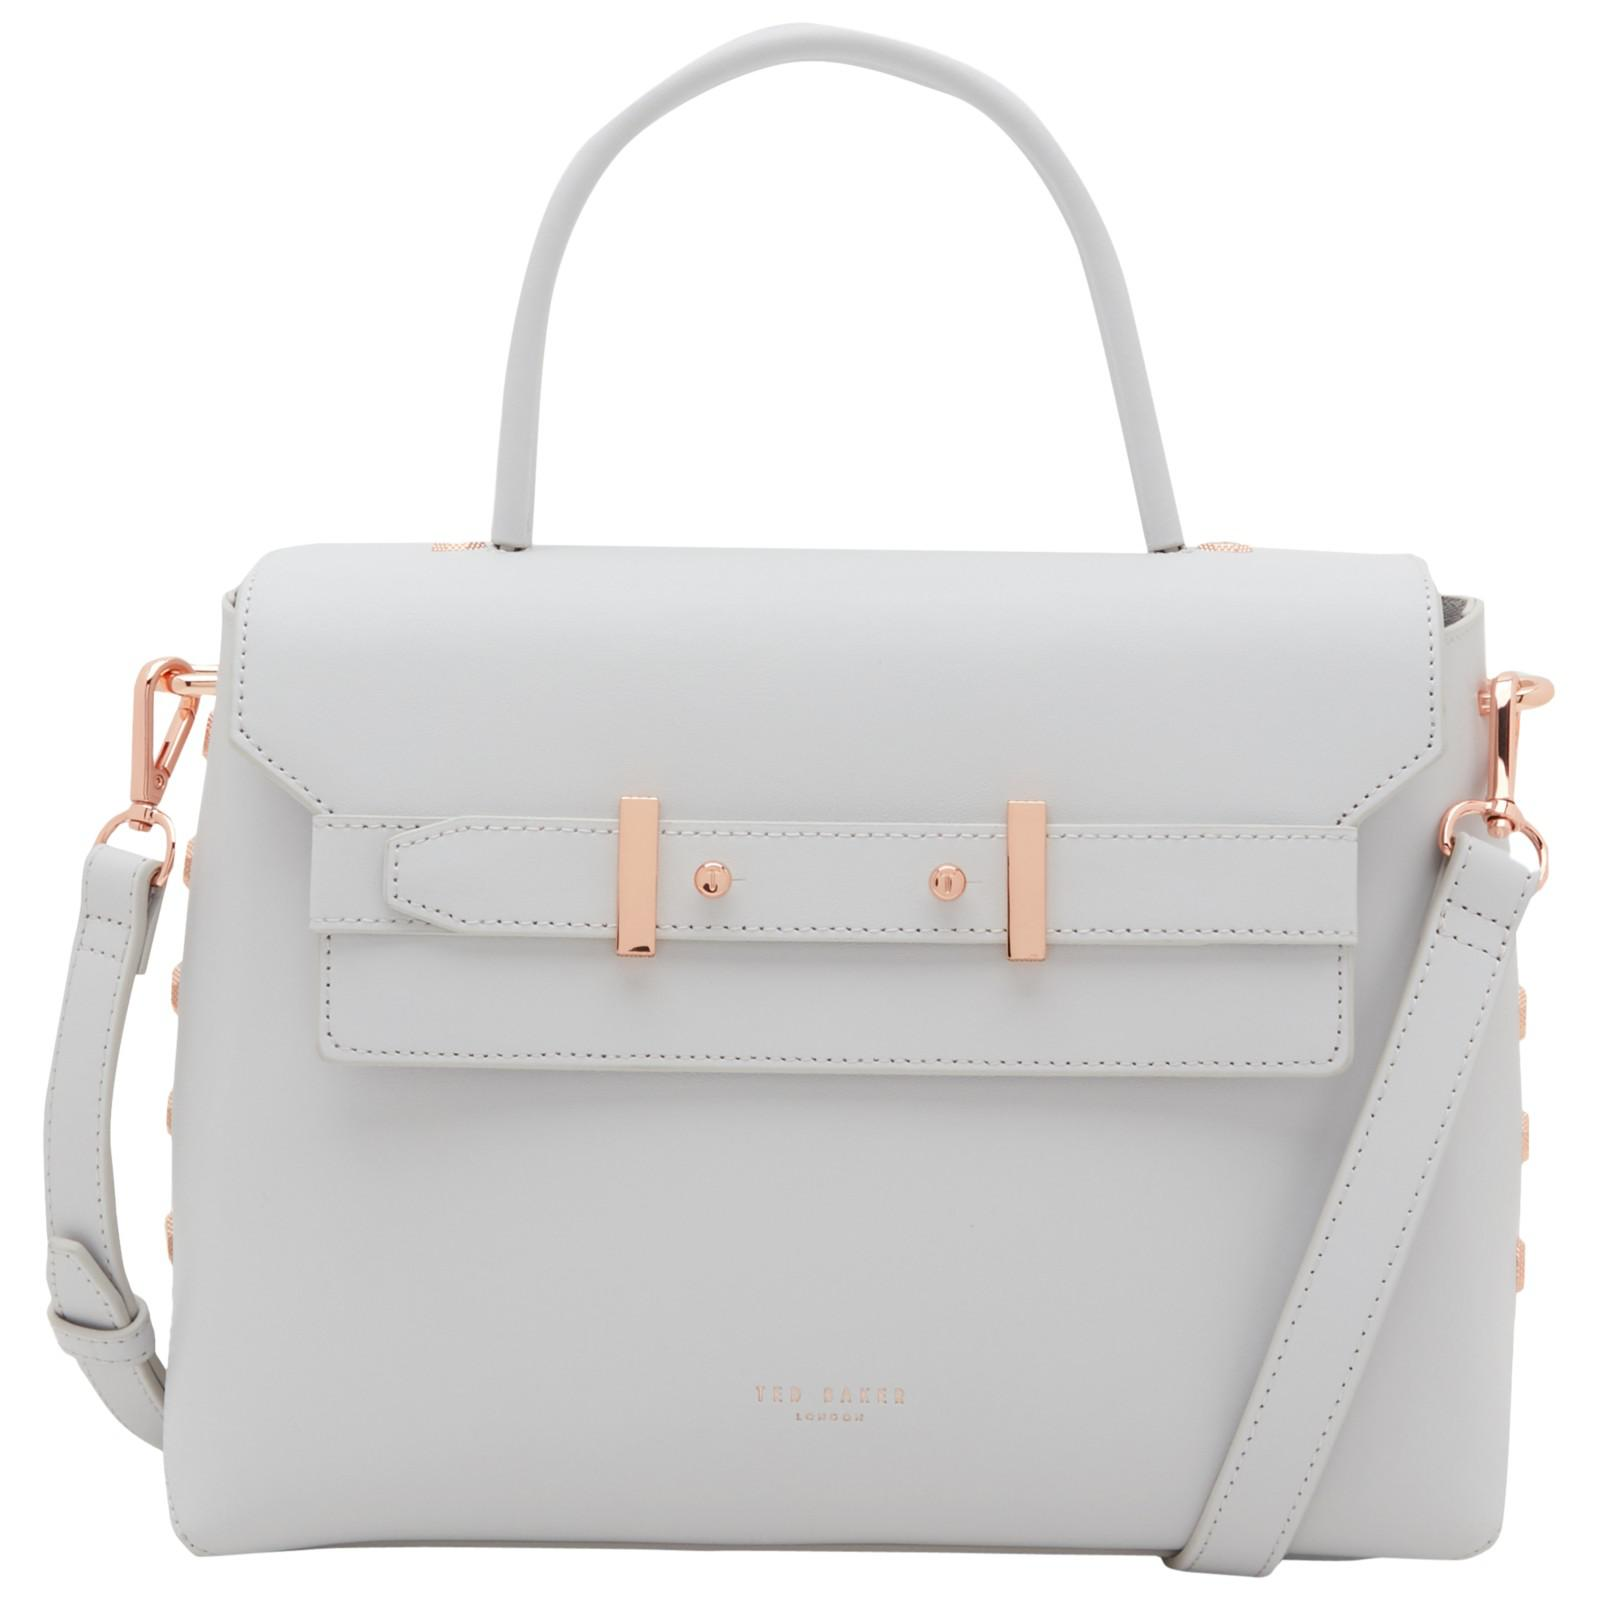 82421d2f3d2 Ted Baker Taymar Stud Edge Lady Leather Across Body Bag in Gray - Lyst